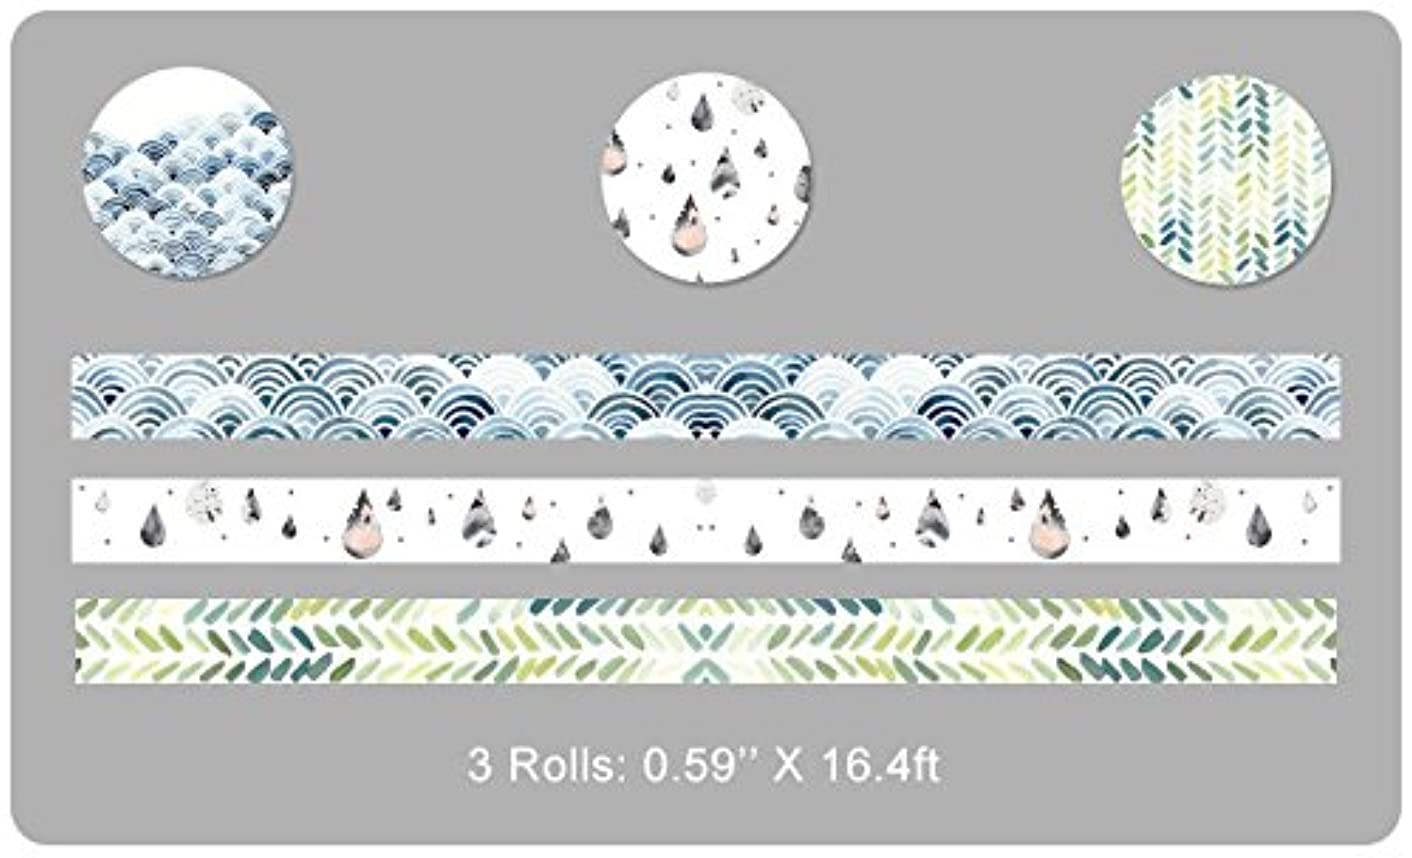 Washi Masking Tape Set Drafting Tool Helper BCopter Creative DIY Arts Kit Party Craft Favor for Kids Adults, Colorful Sticky Paper Decoration Gift Wrap Scrapbook Journal, Hand Tear (N-journal3)